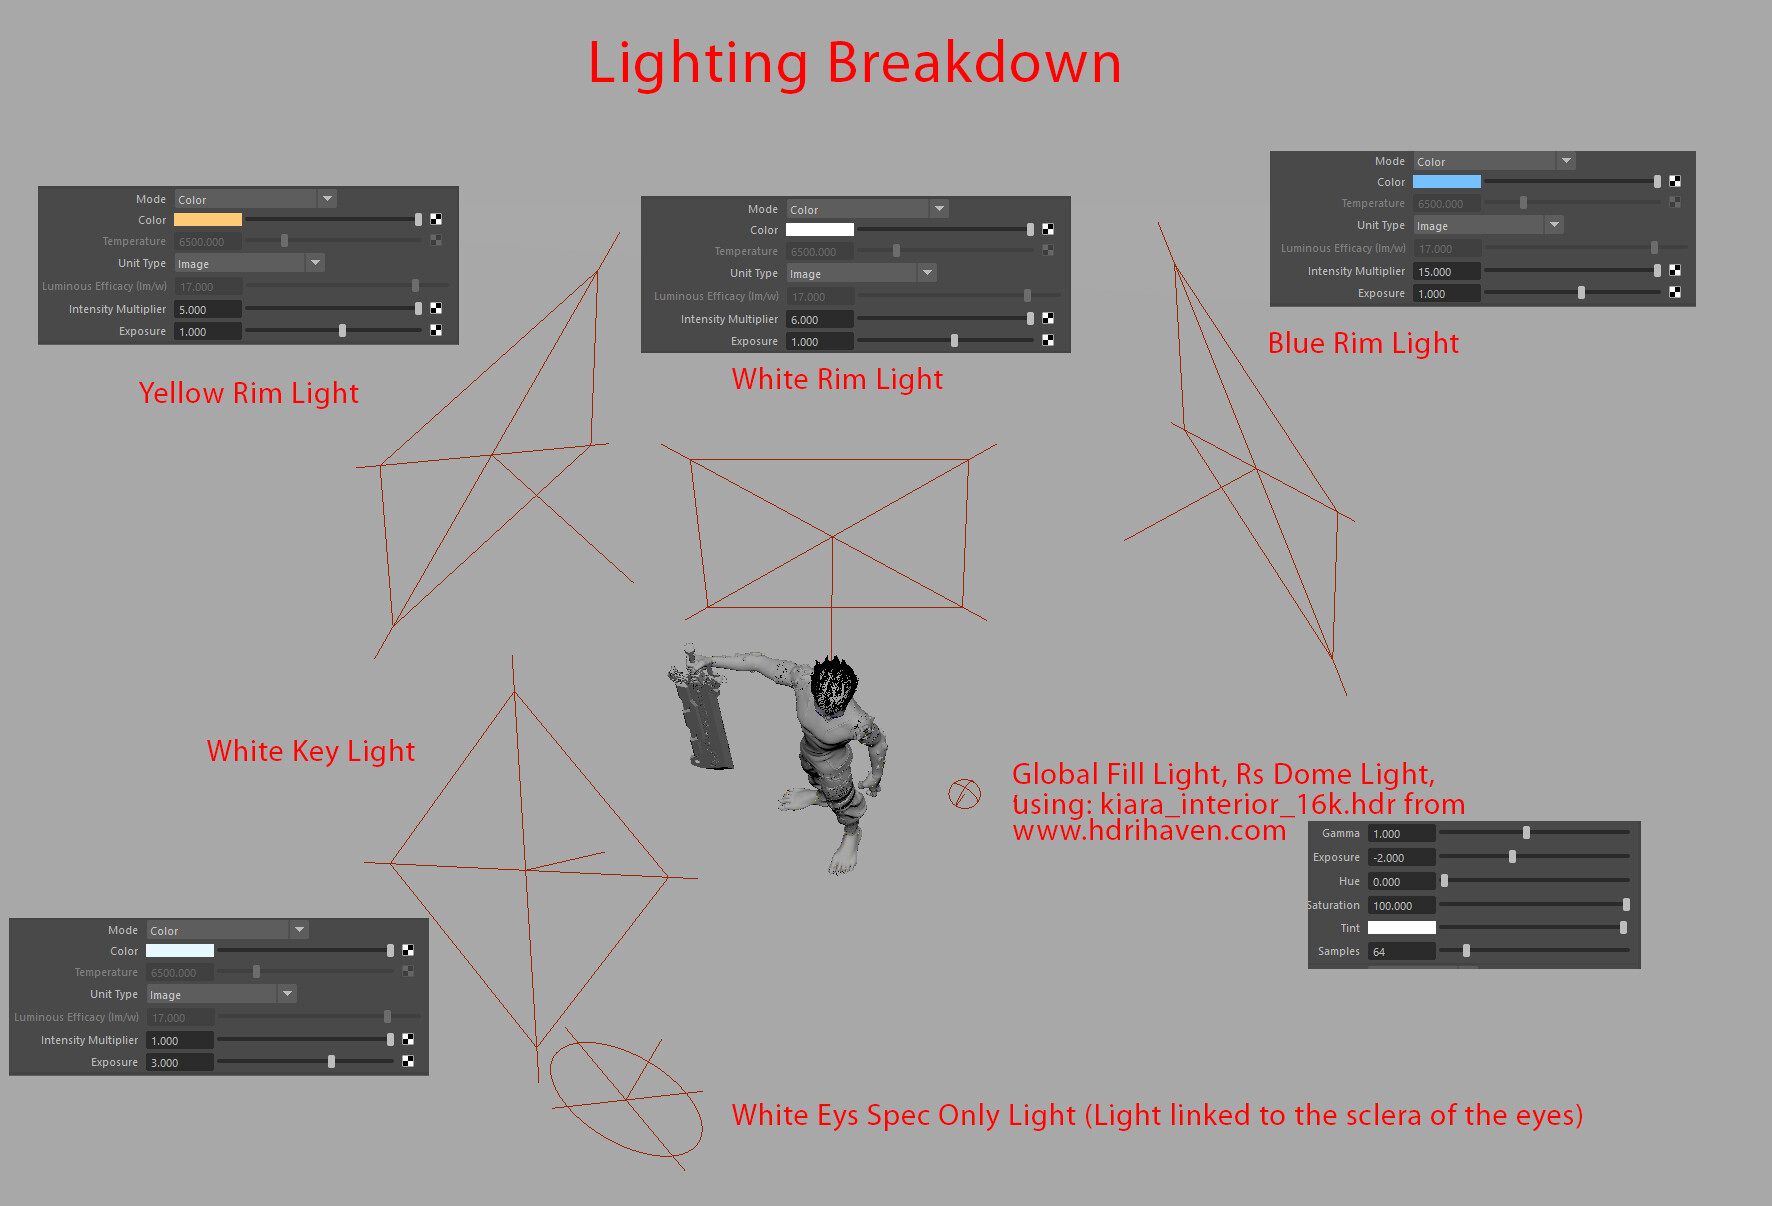 Darko mitev lightingbreakdown